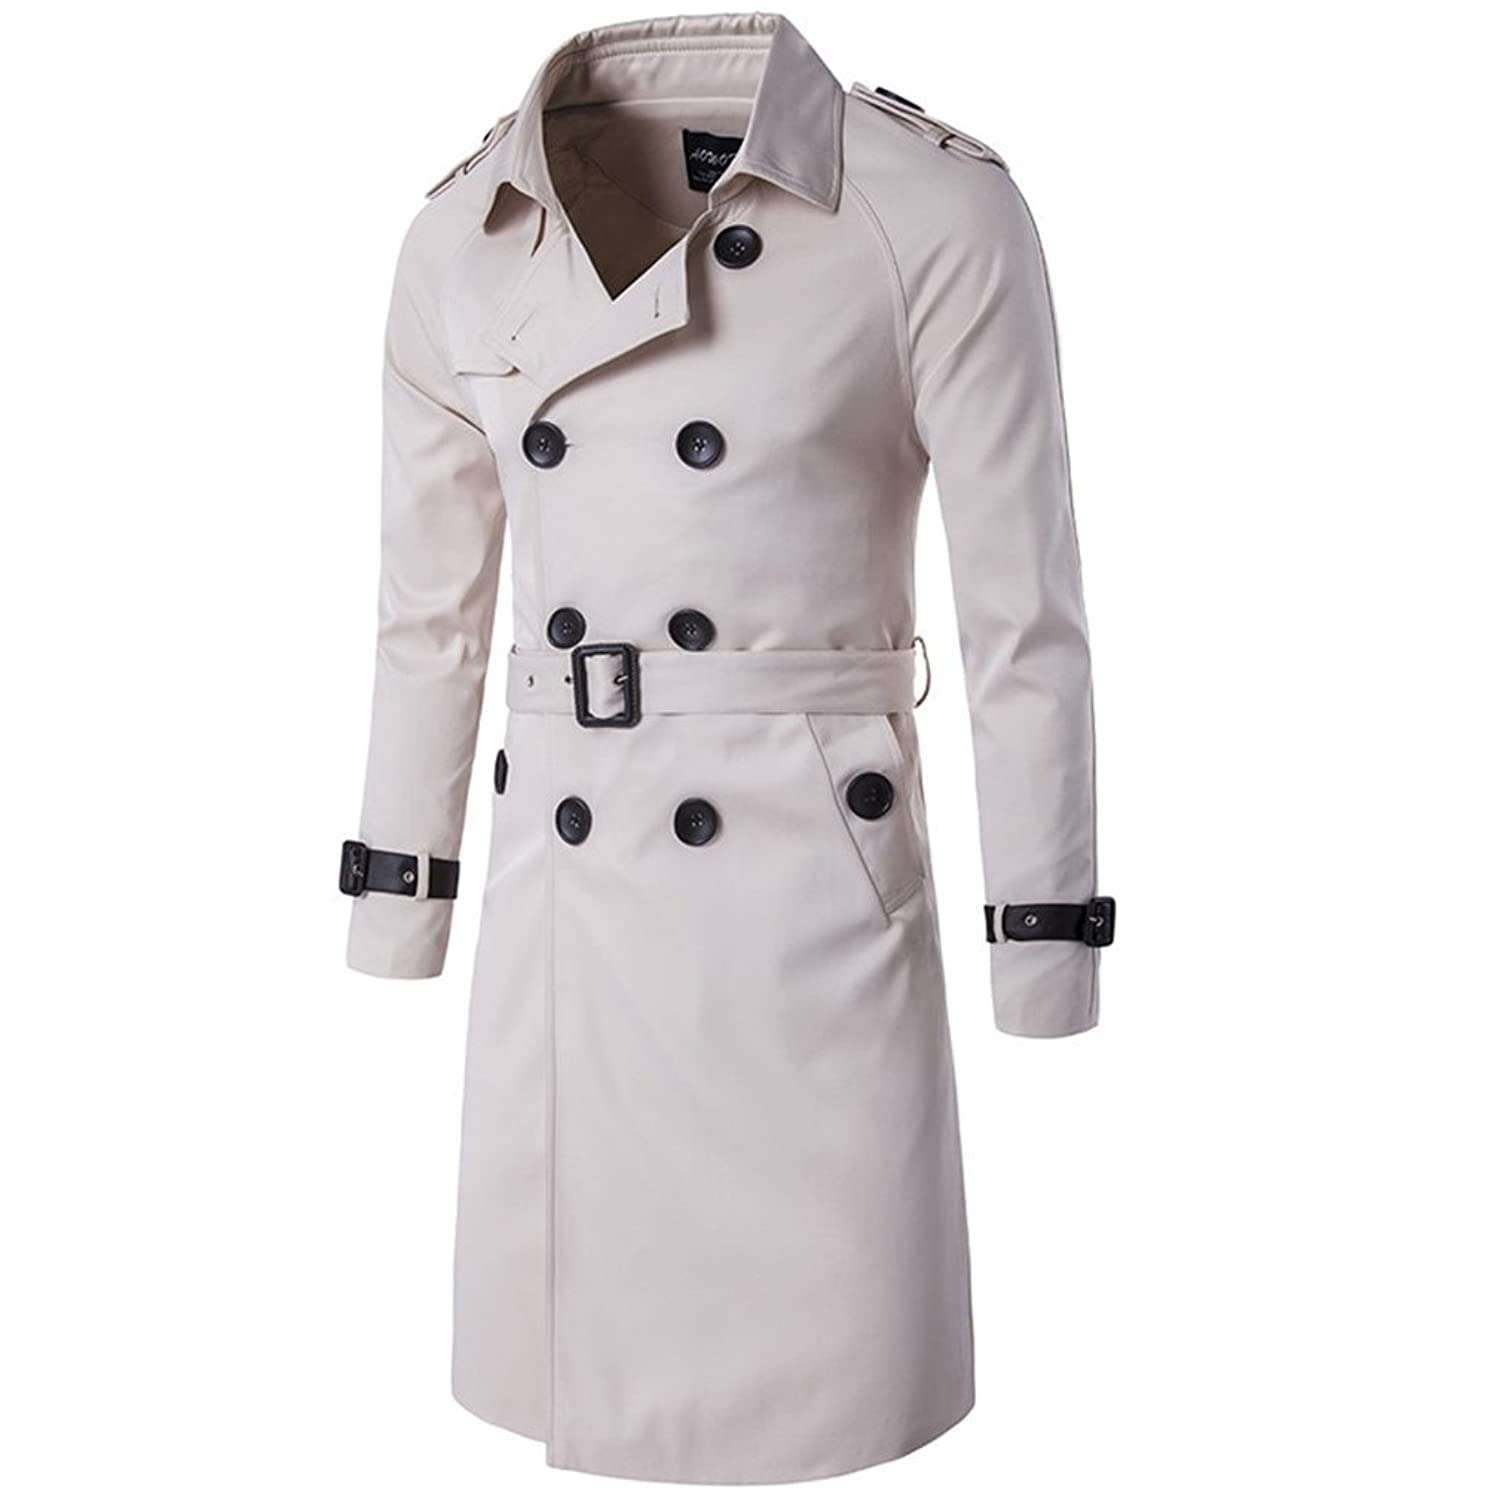 Men Long Trench Coat Autumn Winter Trenchcoat Jacket Male Coat Trench Plus Size at Amazon Mens Clothing store: